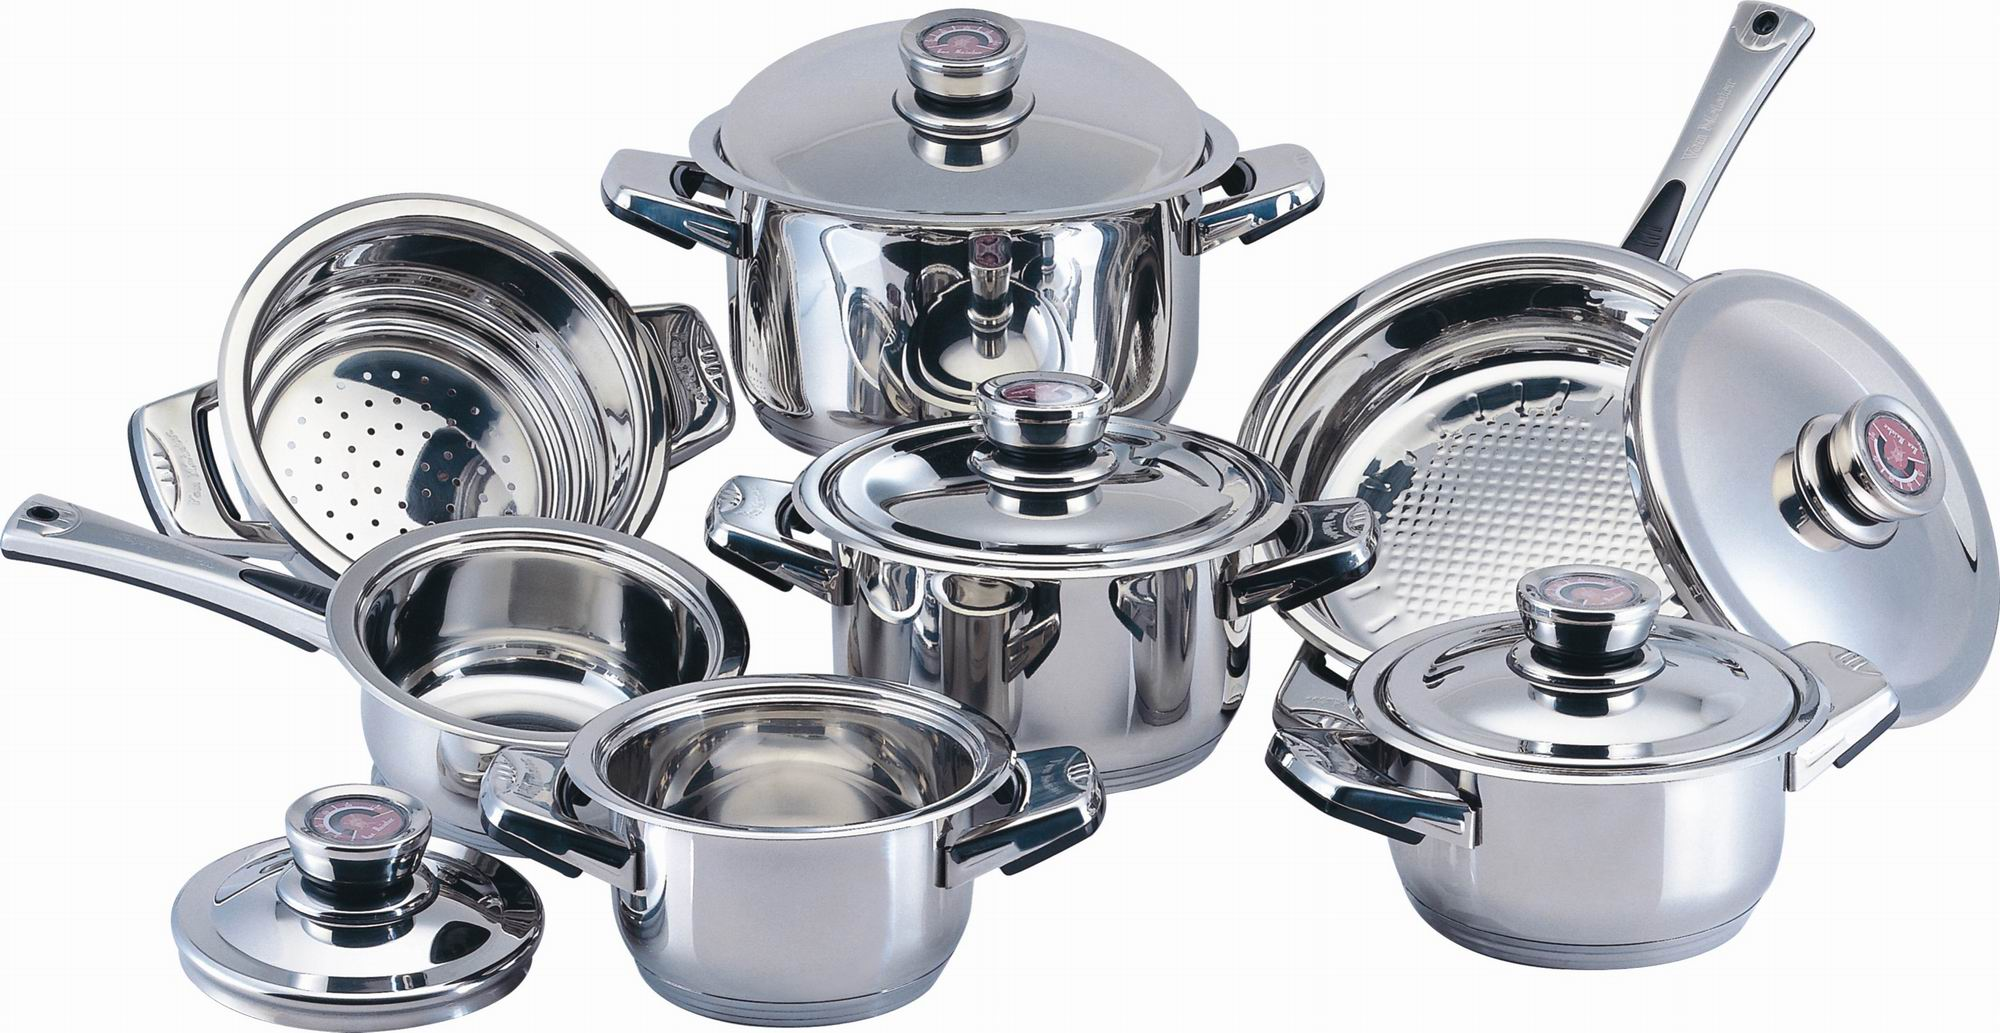 kitchenware / cookware / pots and pans